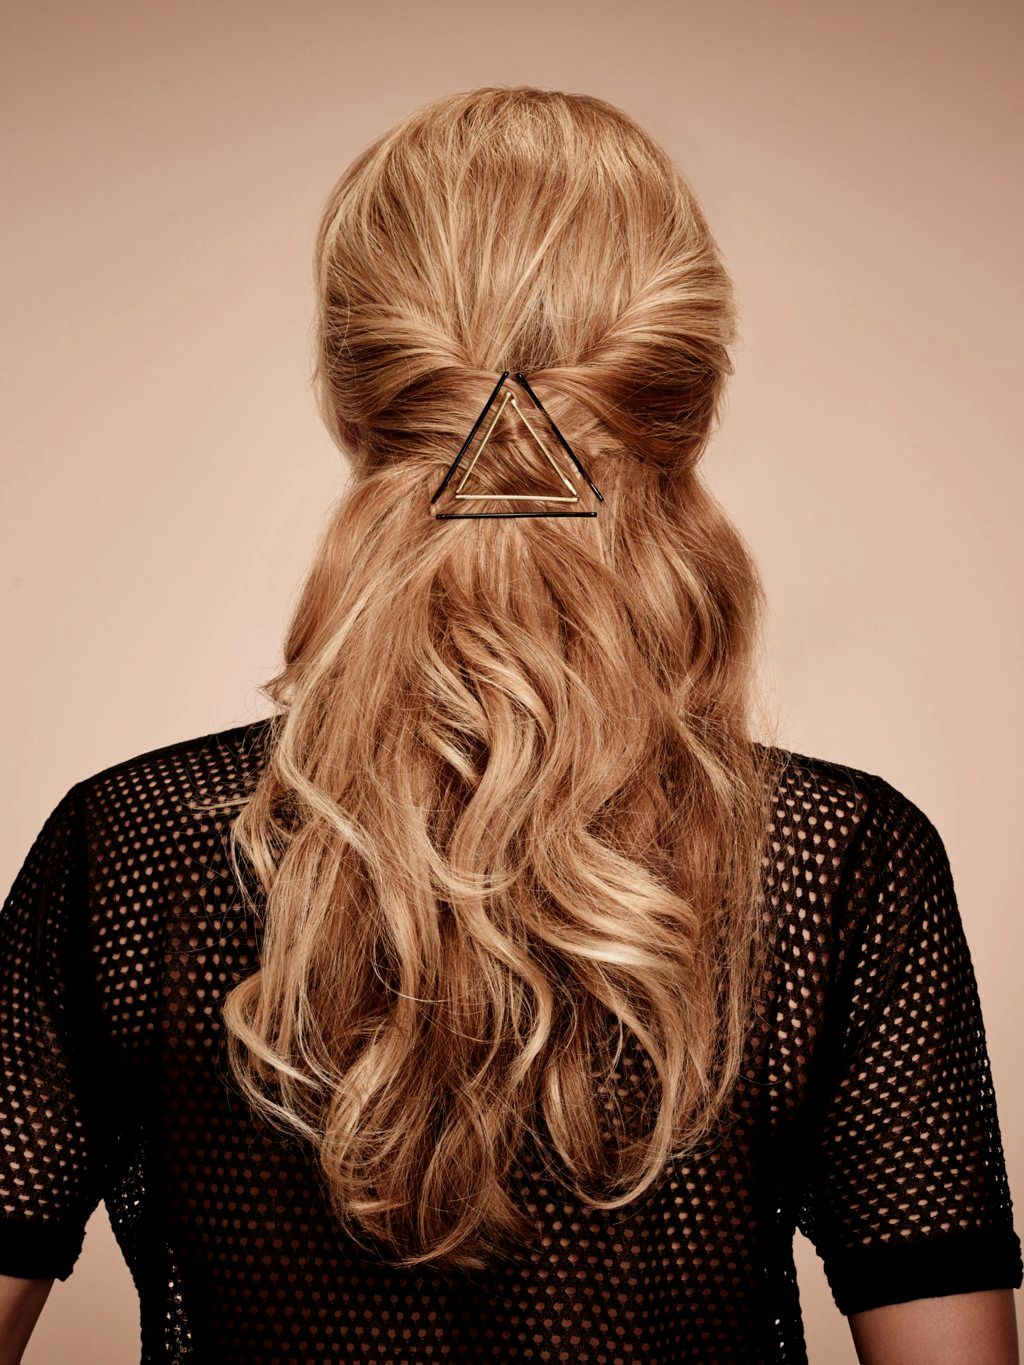 beautiful natural curls hairstyles to imitate pattern-Modern Naturlocken Hairstyles To imitate models